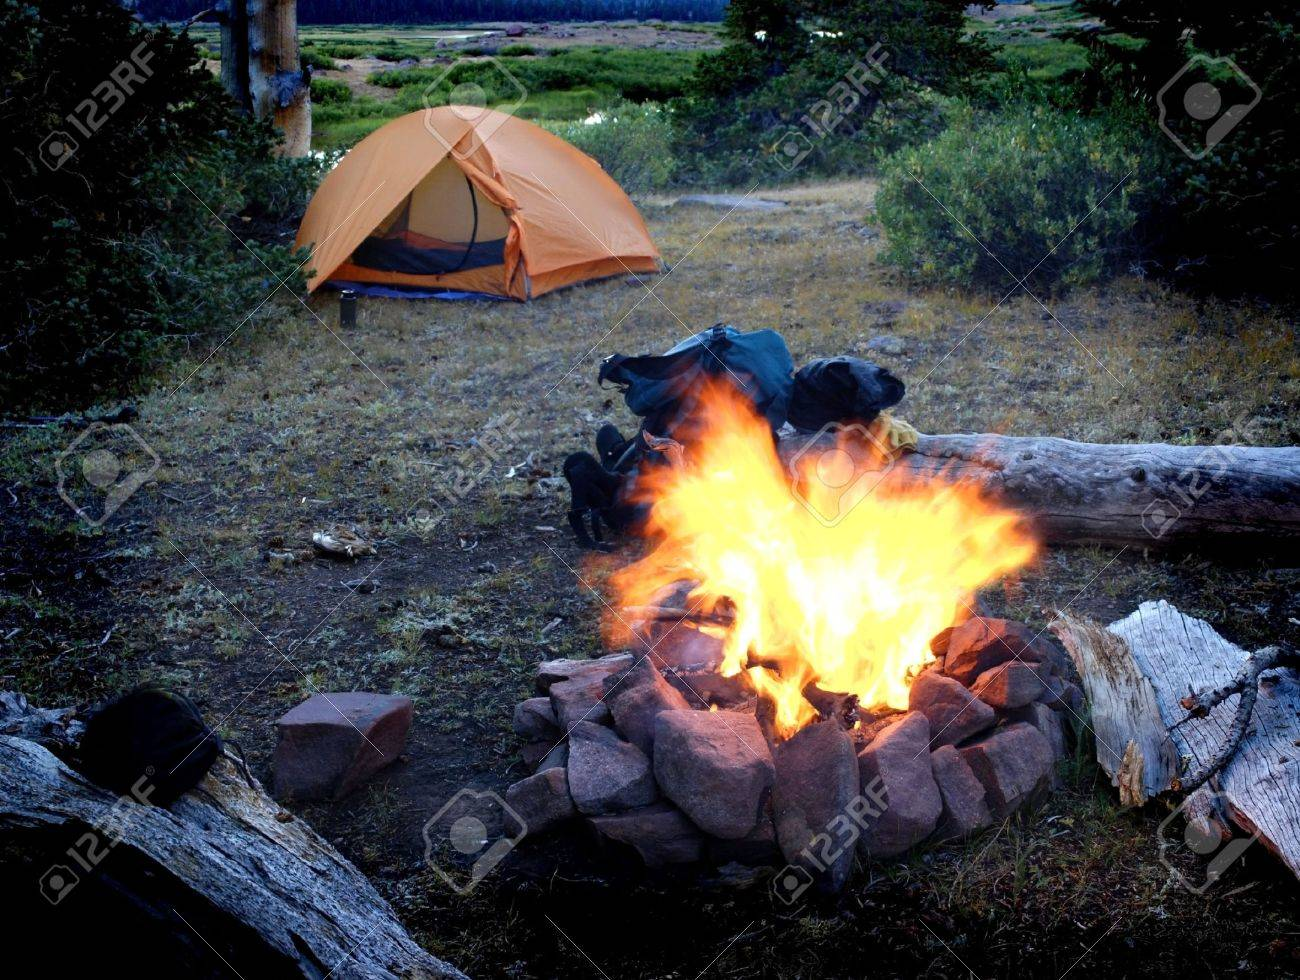 Campfire with tent in background for camping scene Stock Photo - 4539931